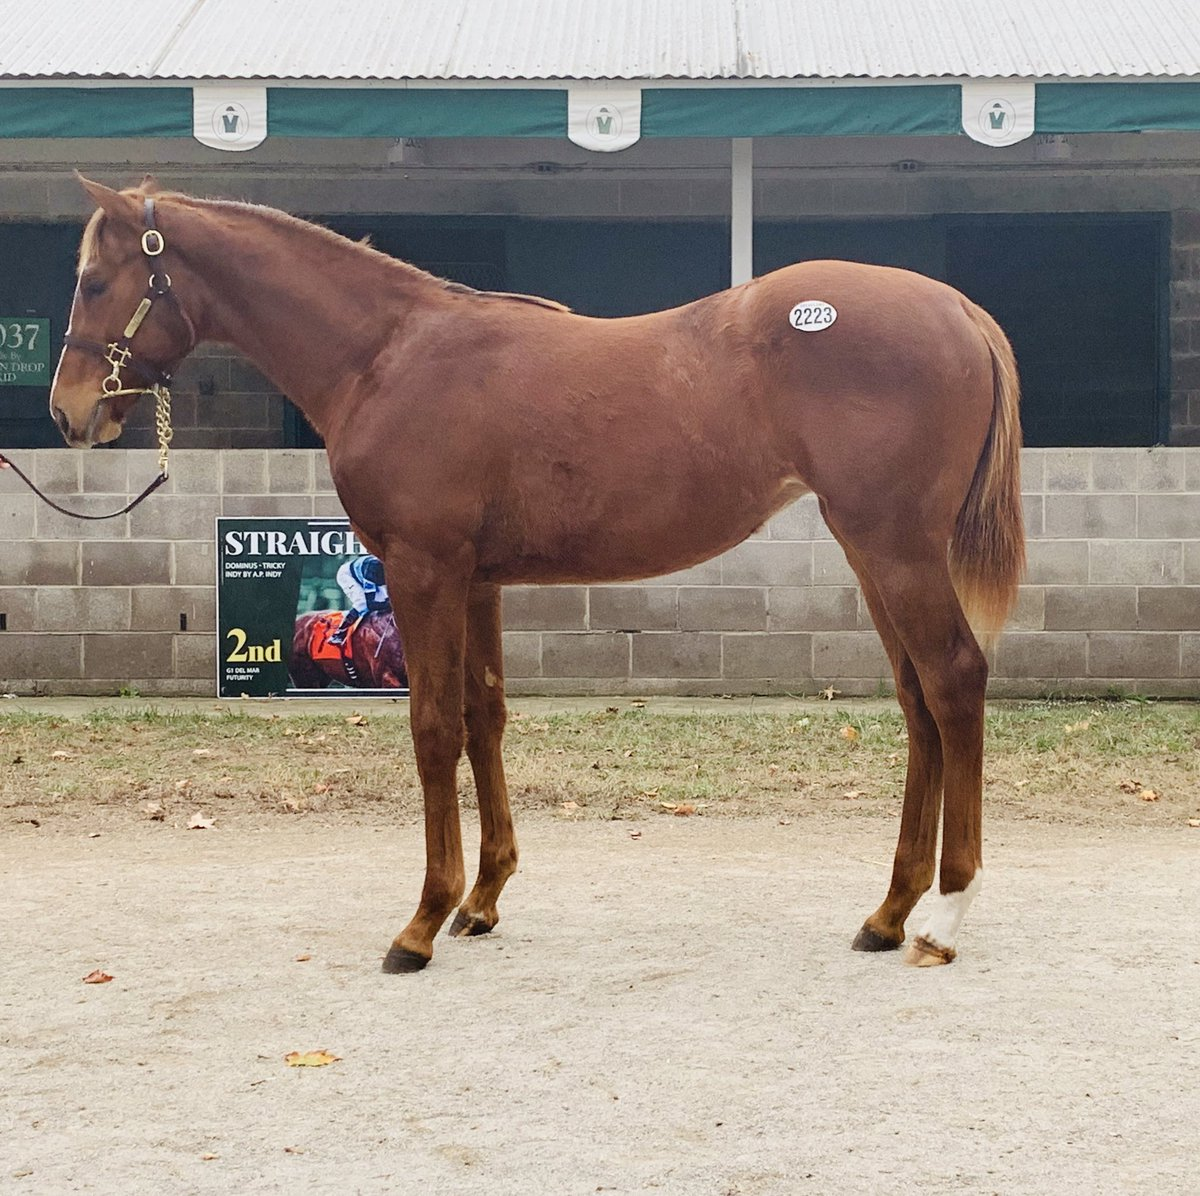 test Twitter Media - Another chestnut filly by a son of Tapit..hope this filly follows suit. Hip 2223 by freshman sire @coolmorestud Cupid gets added to the roster today @keenelandsales thanks to Steve Weston for letting me buy one of my favorite physicals on the day. https://t.co/fPg7ynGWl2